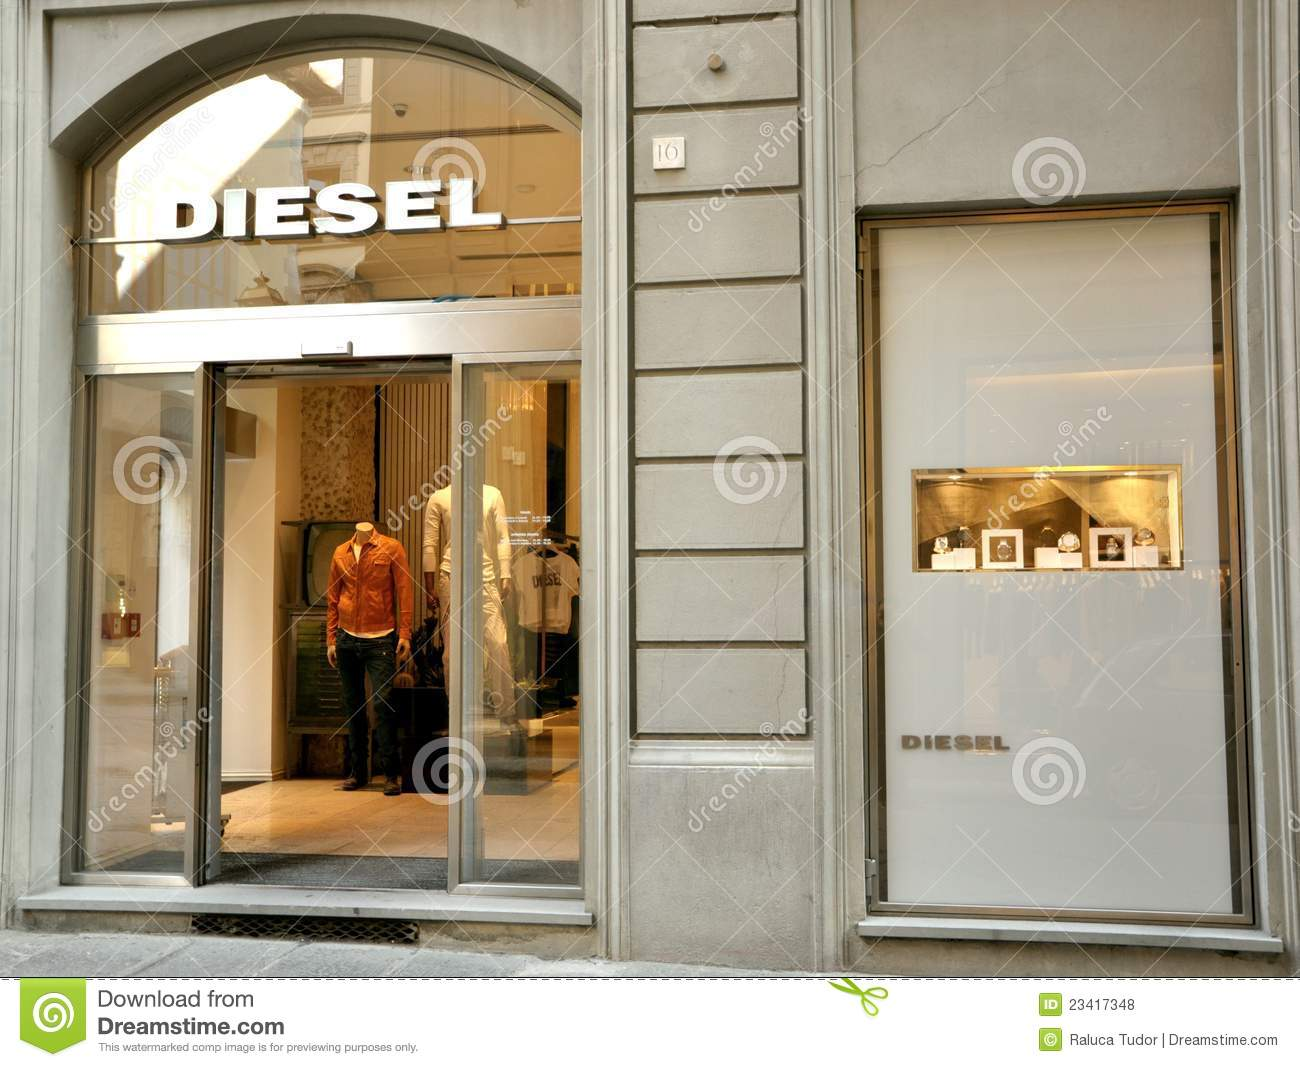 Diesel fashion shop in italy editorial stock photo image for Dream store firenze